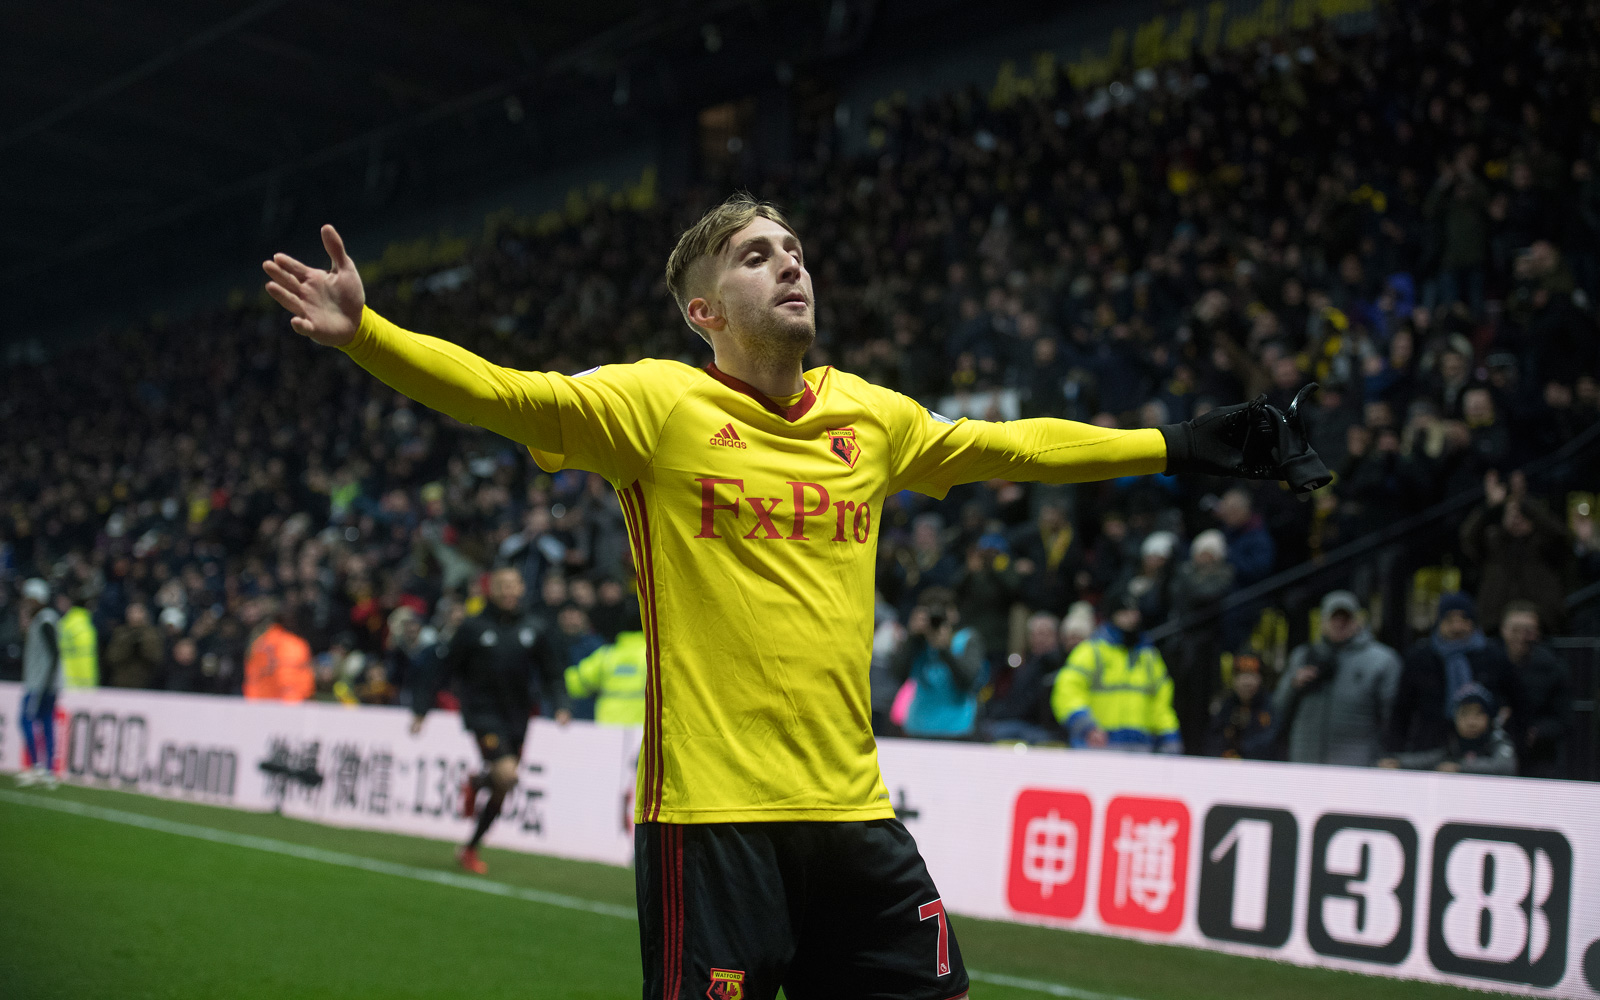 Deulofeu, attaccante dell'Udinese